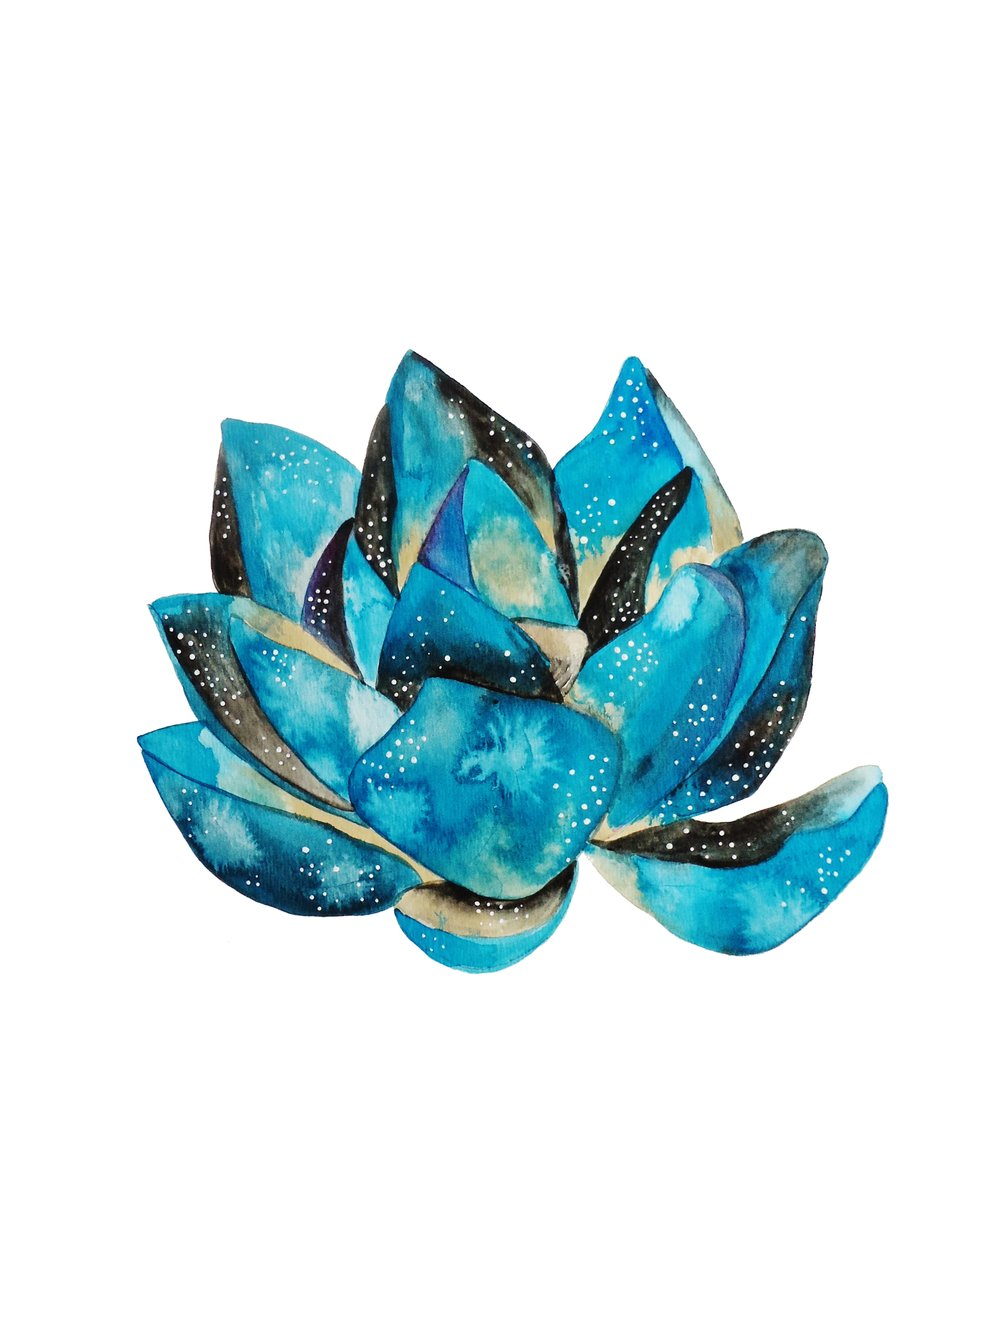 blue lotus flower.JPEG